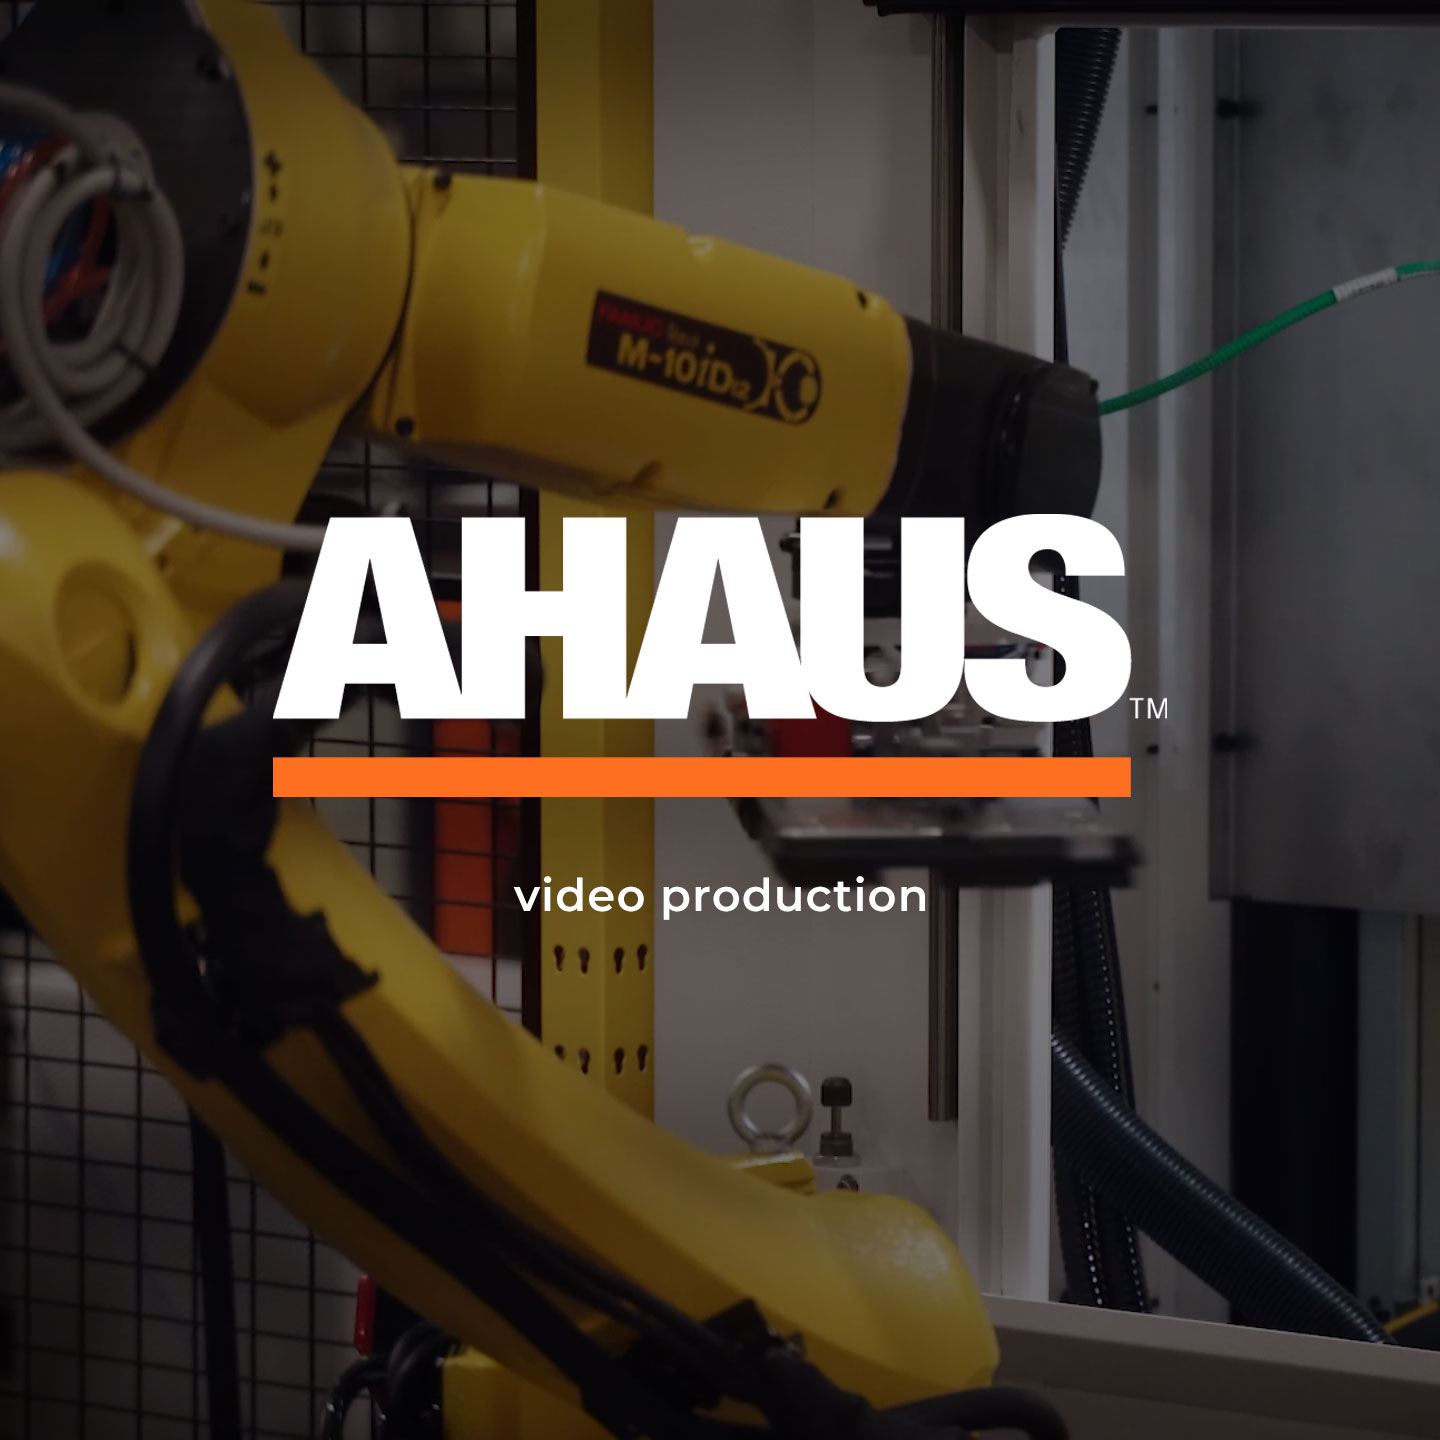 Ahaus case study logo and button